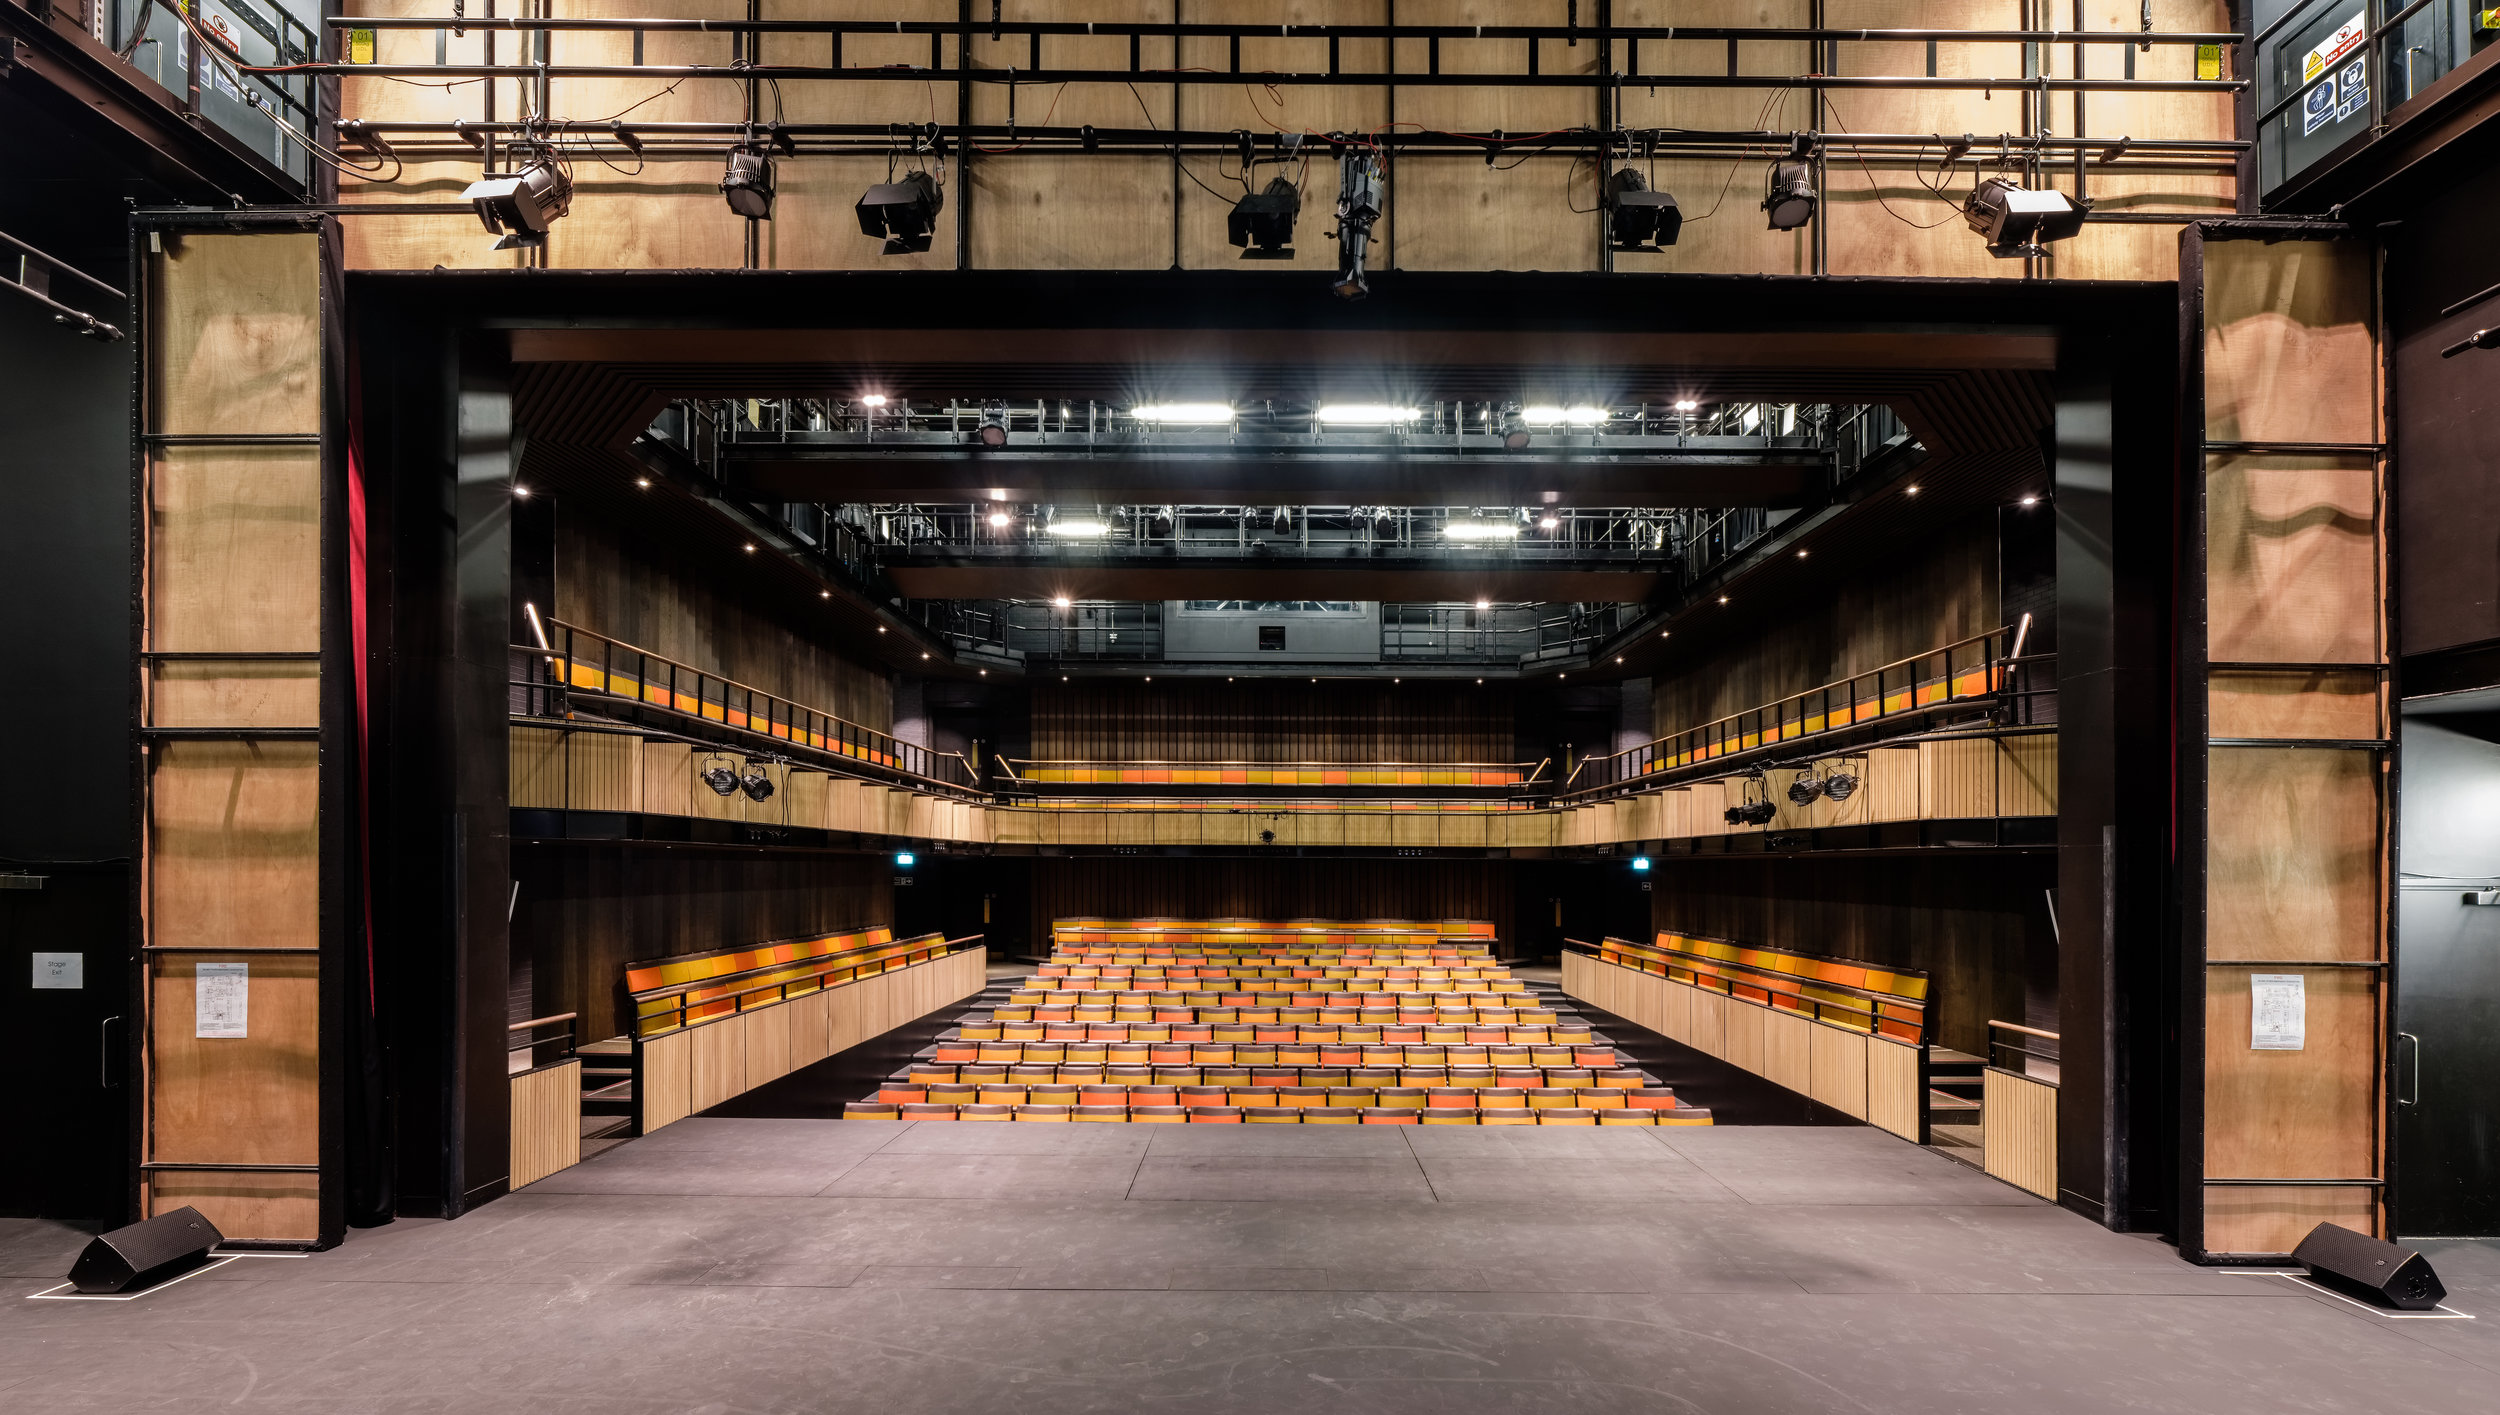 Fred+Howarth+Photography_Perse+Schol+Performing+Arts+Centre_04.jpg